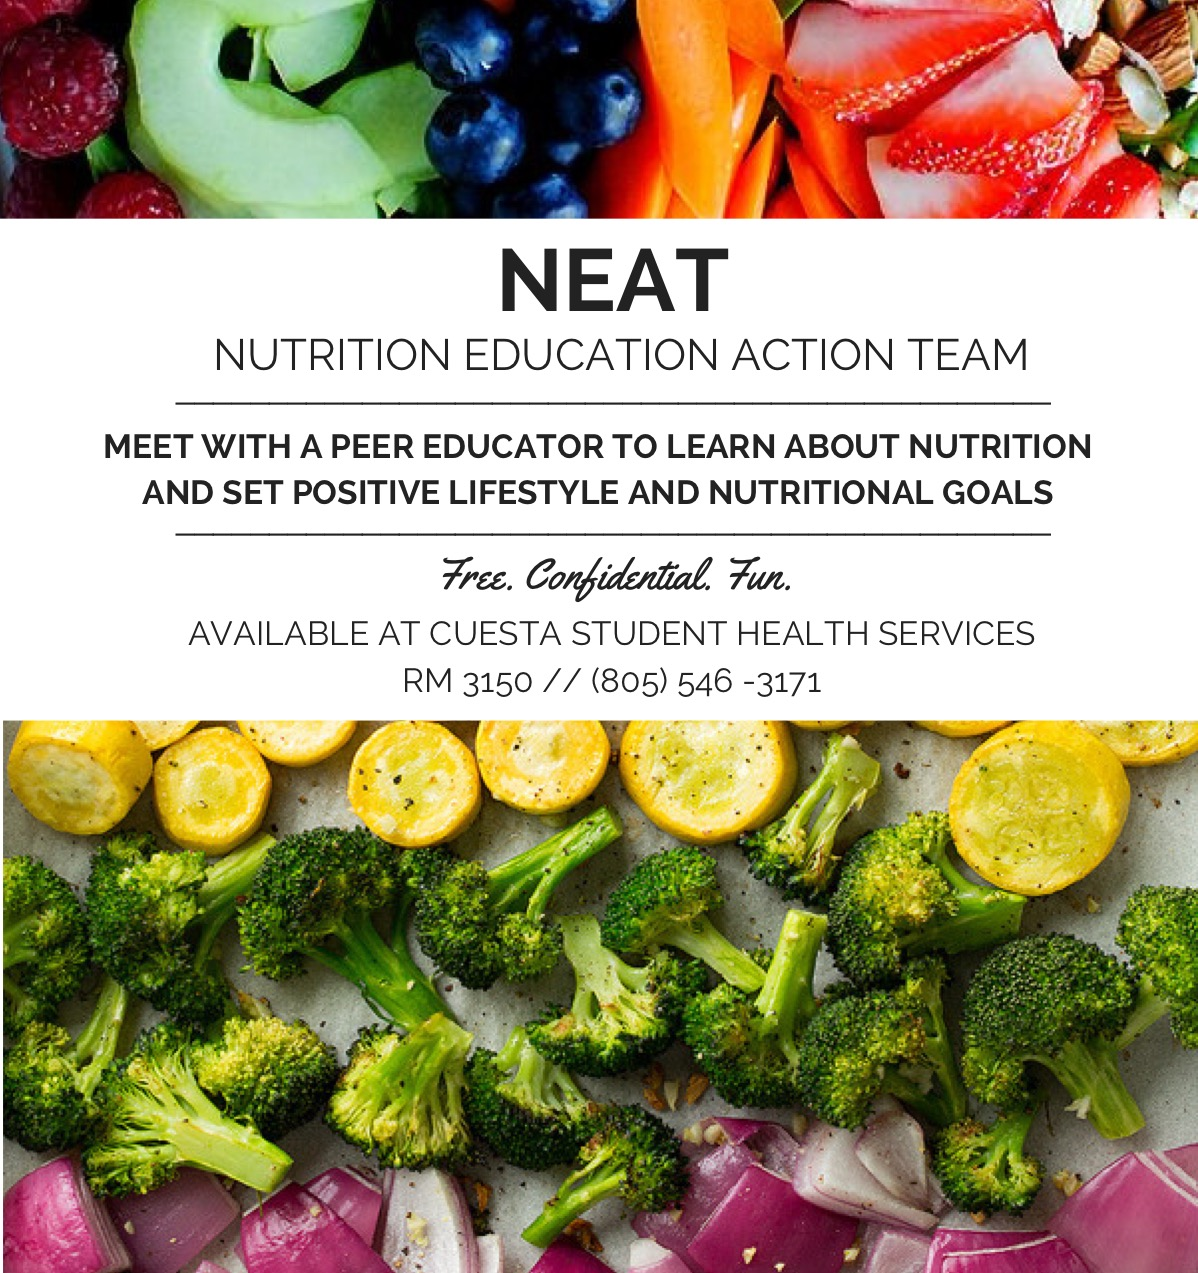 NEAT NUTRITION EDUCATION ACTION TEAM _______________________________________________ MEET WITH A PEER EDUCATOR TO LEARN ABOUT NUTRITION AND SET POSITIVE LIFESTYLE AND NUTRITIONAL GOALS _______________________________________________ Free. Confidential. Fun. AVAILABLE AT CUESTA STUDENT HEALTH SERVICES RM 3150 // (805) 546 -3171